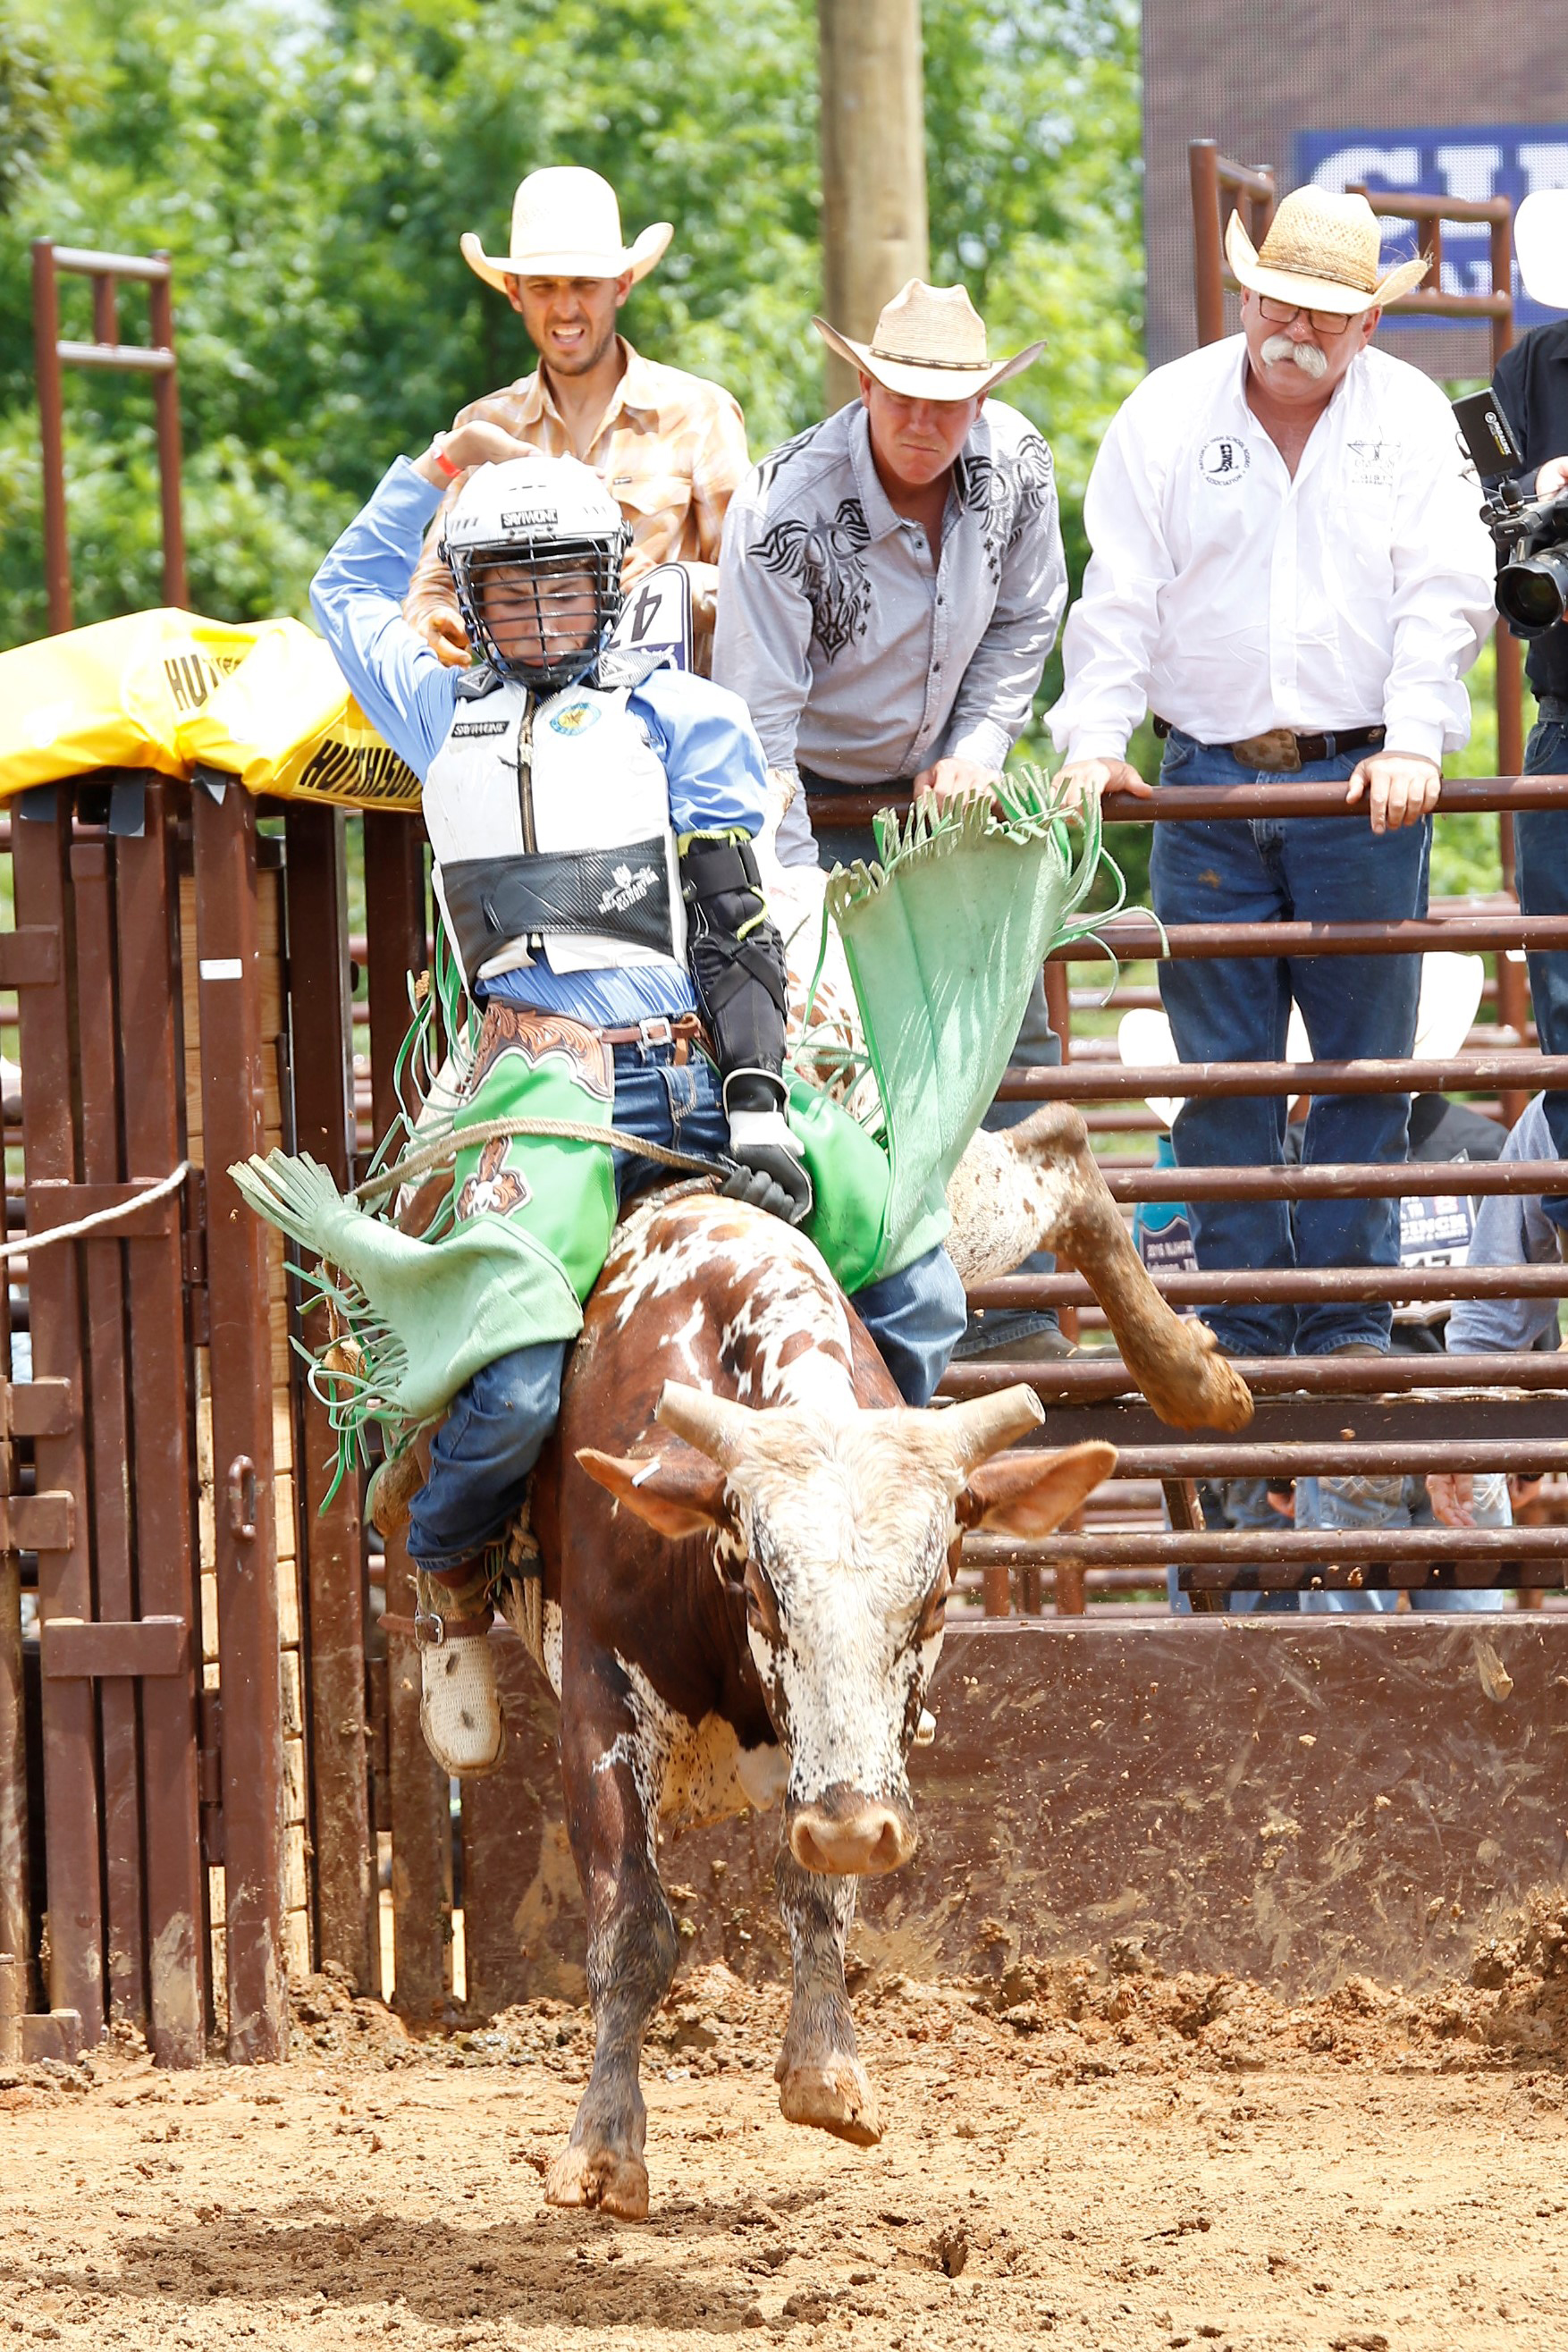 Contributed photo Koltin Hevalow, seen here during a recent junior bullriding competition, has won three rodeo world titles over the past decade. He will be a freshman at Platte County High School this year.